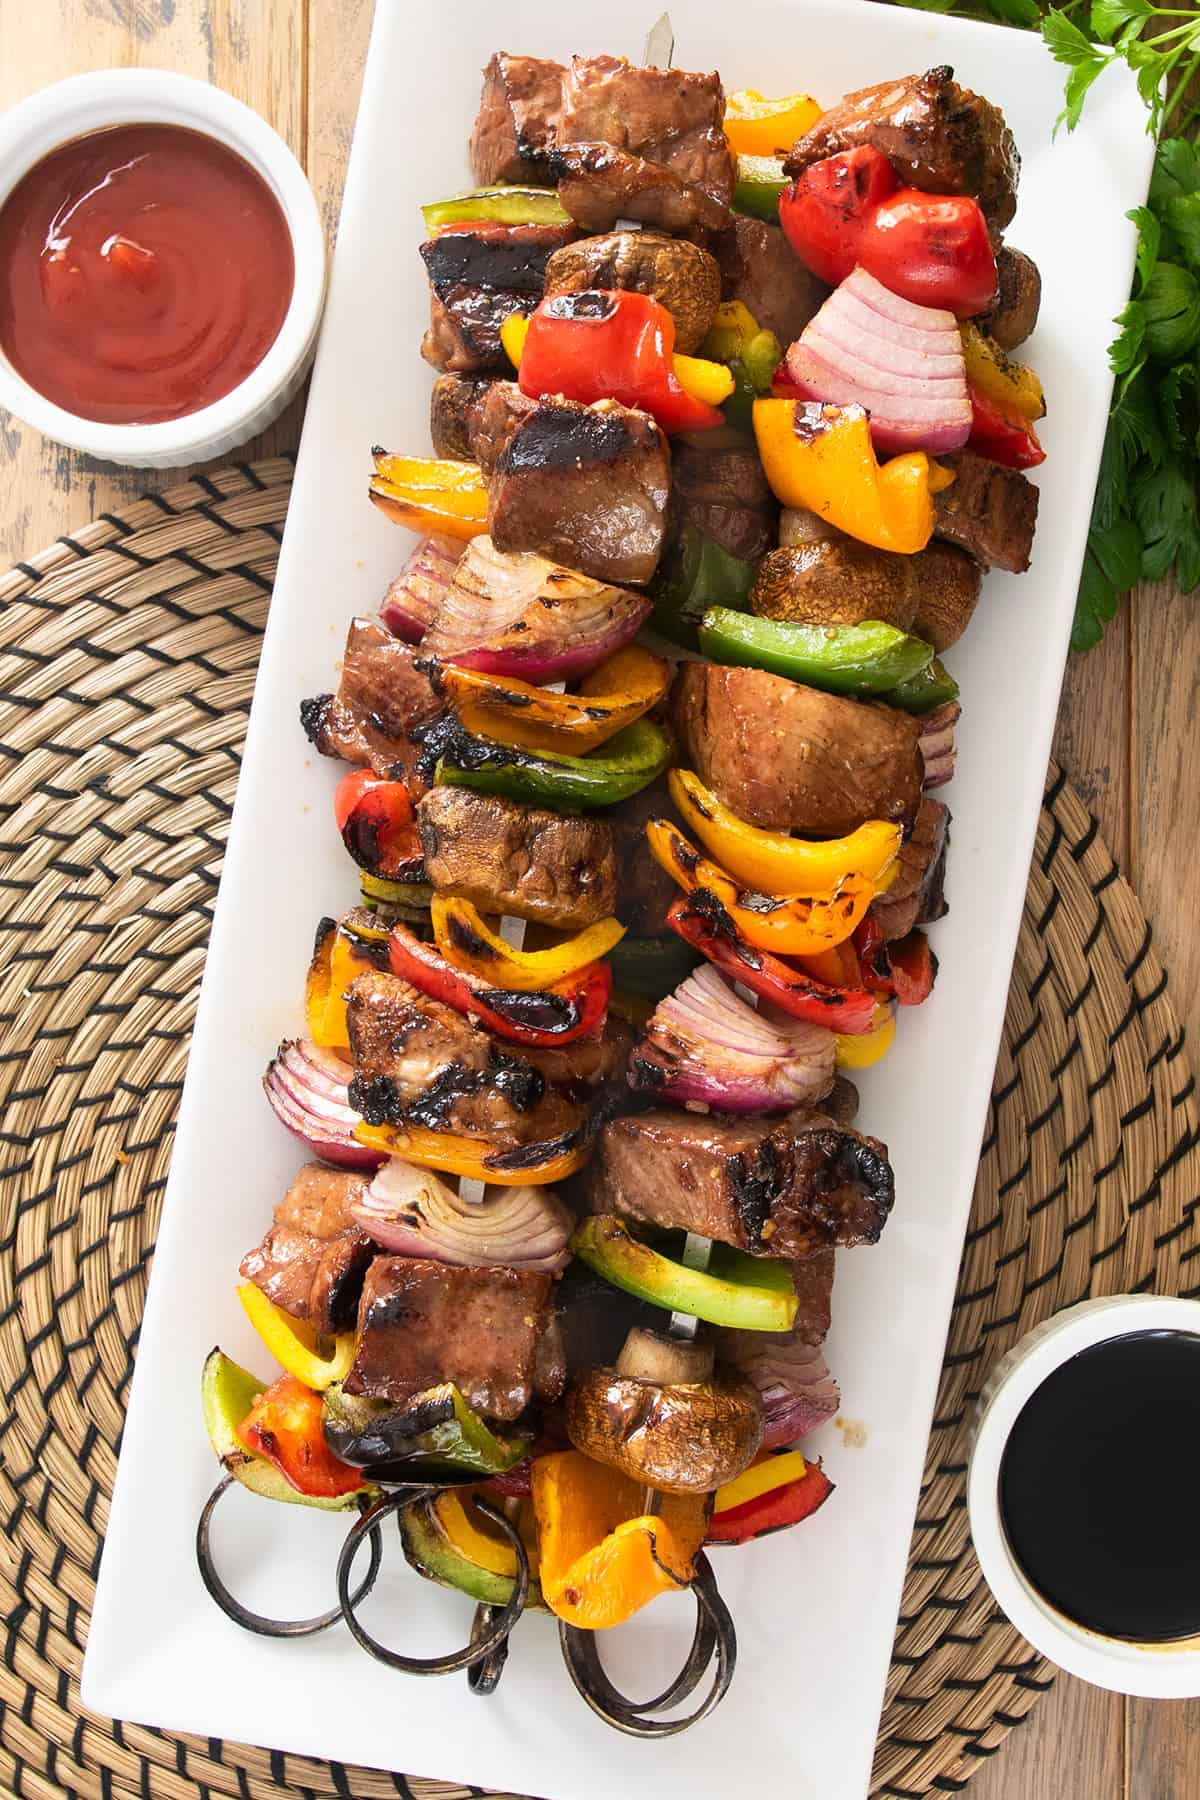 Steak kabobs on skewers with peppers, mushrooms, and onions. Sauces on the side.